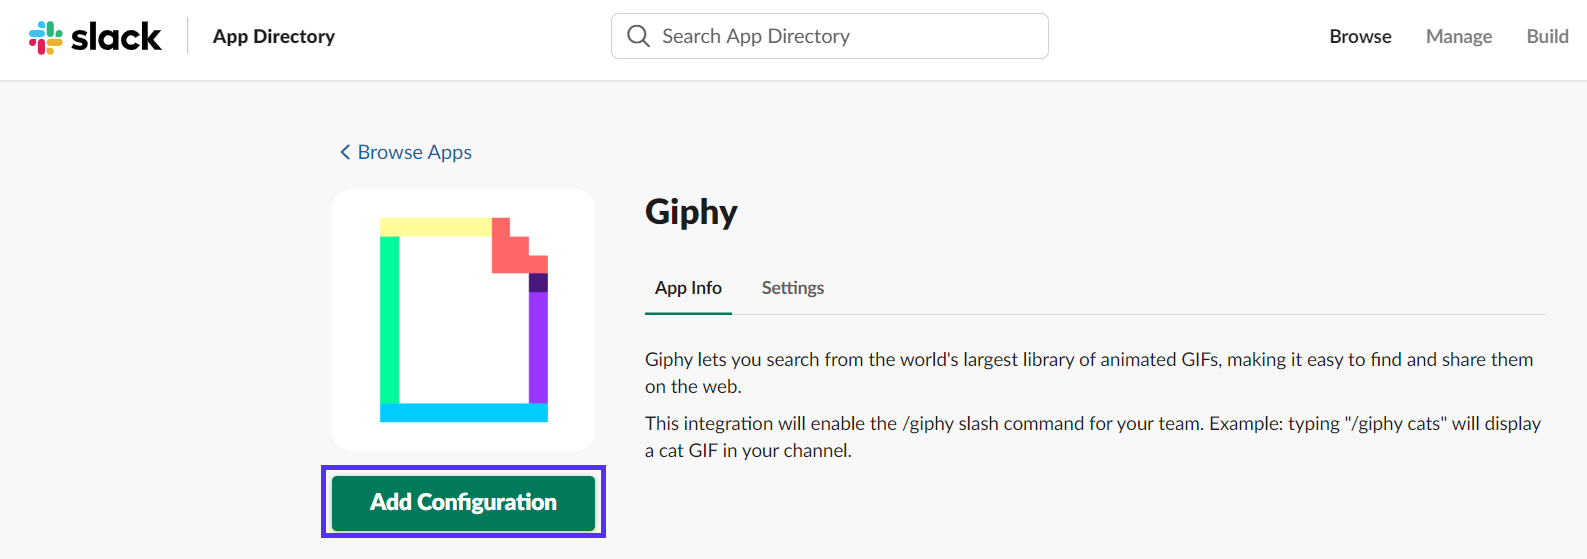 Configuración de Giphy add